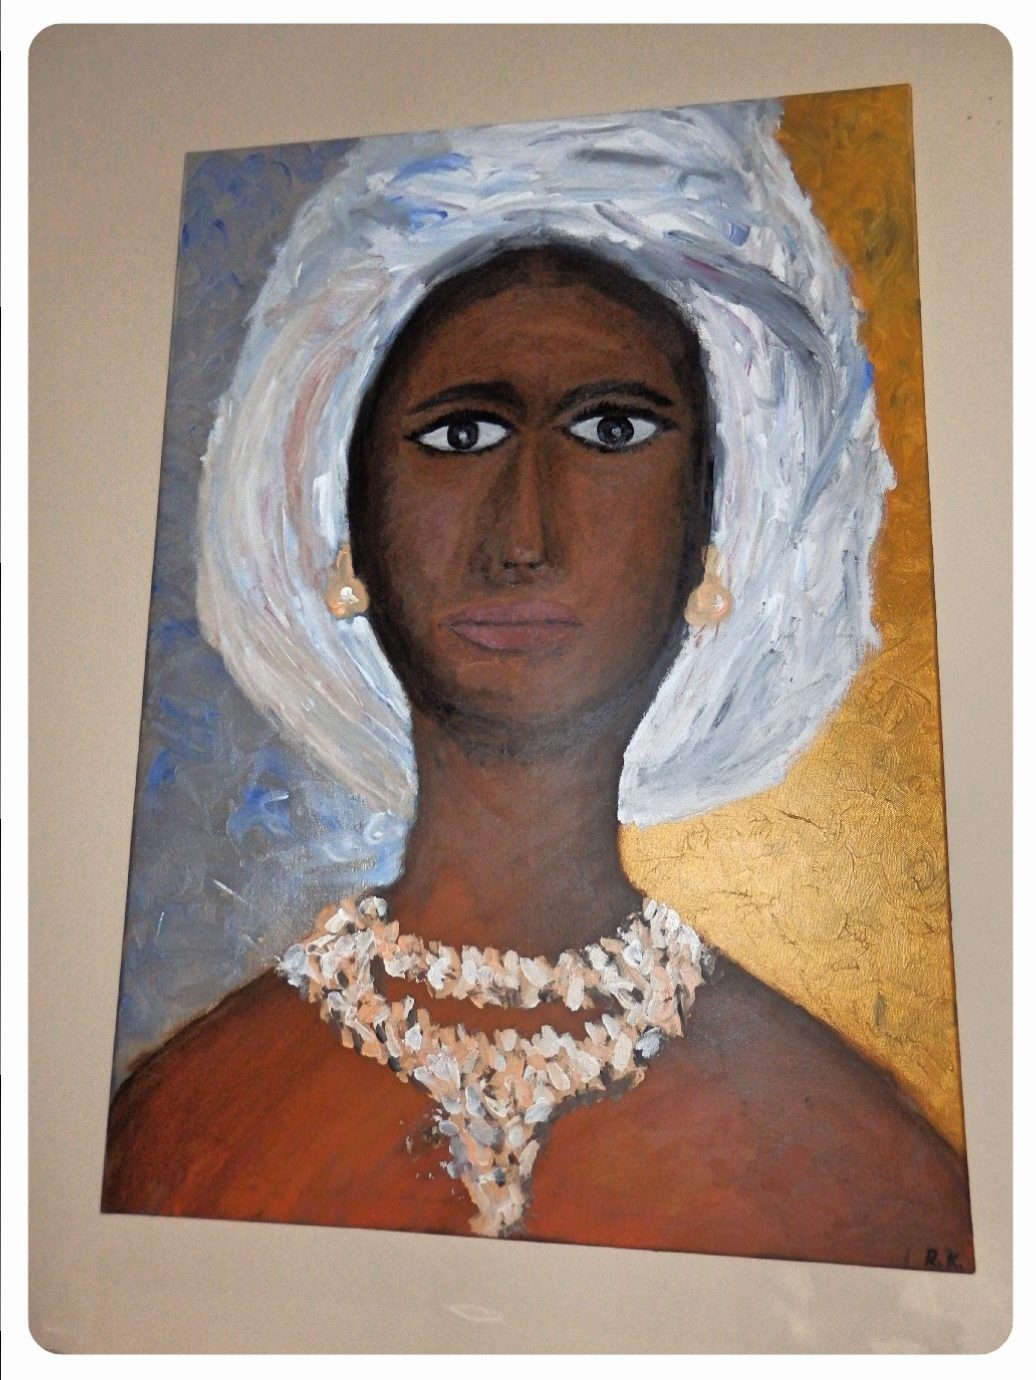 Čierna dáma v turbane ~ Black woman in turban